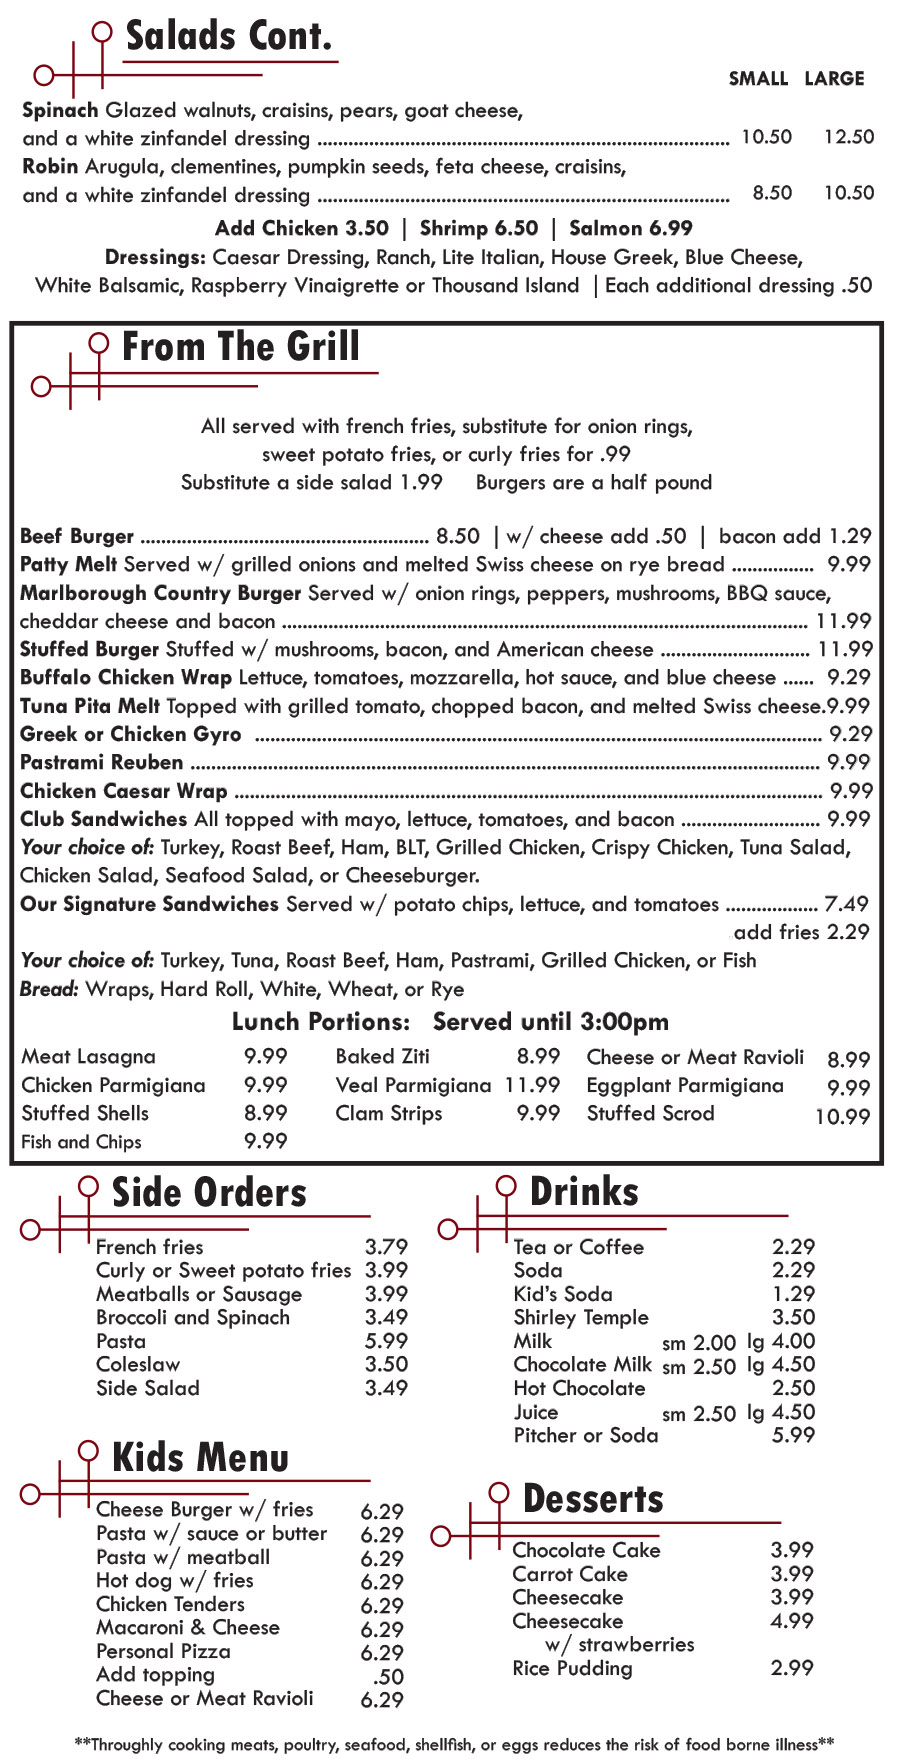 190362_take-out_5-5x10-5_menu-4